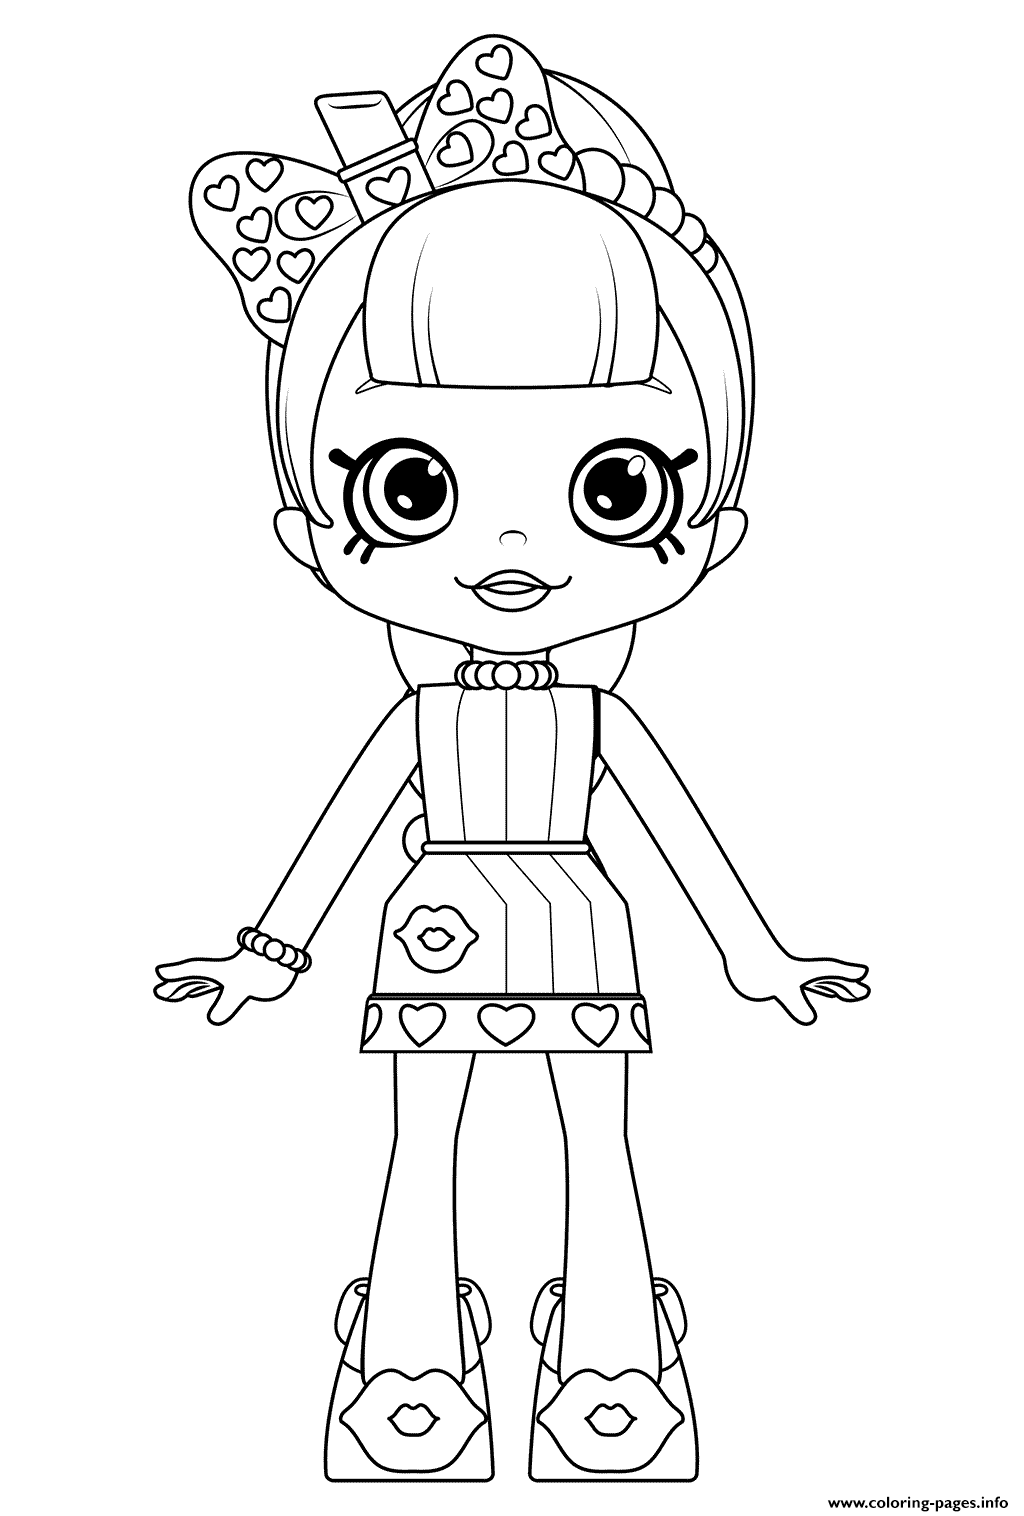 Cute shoppies doll lippy lulu coloring coloring pages printable